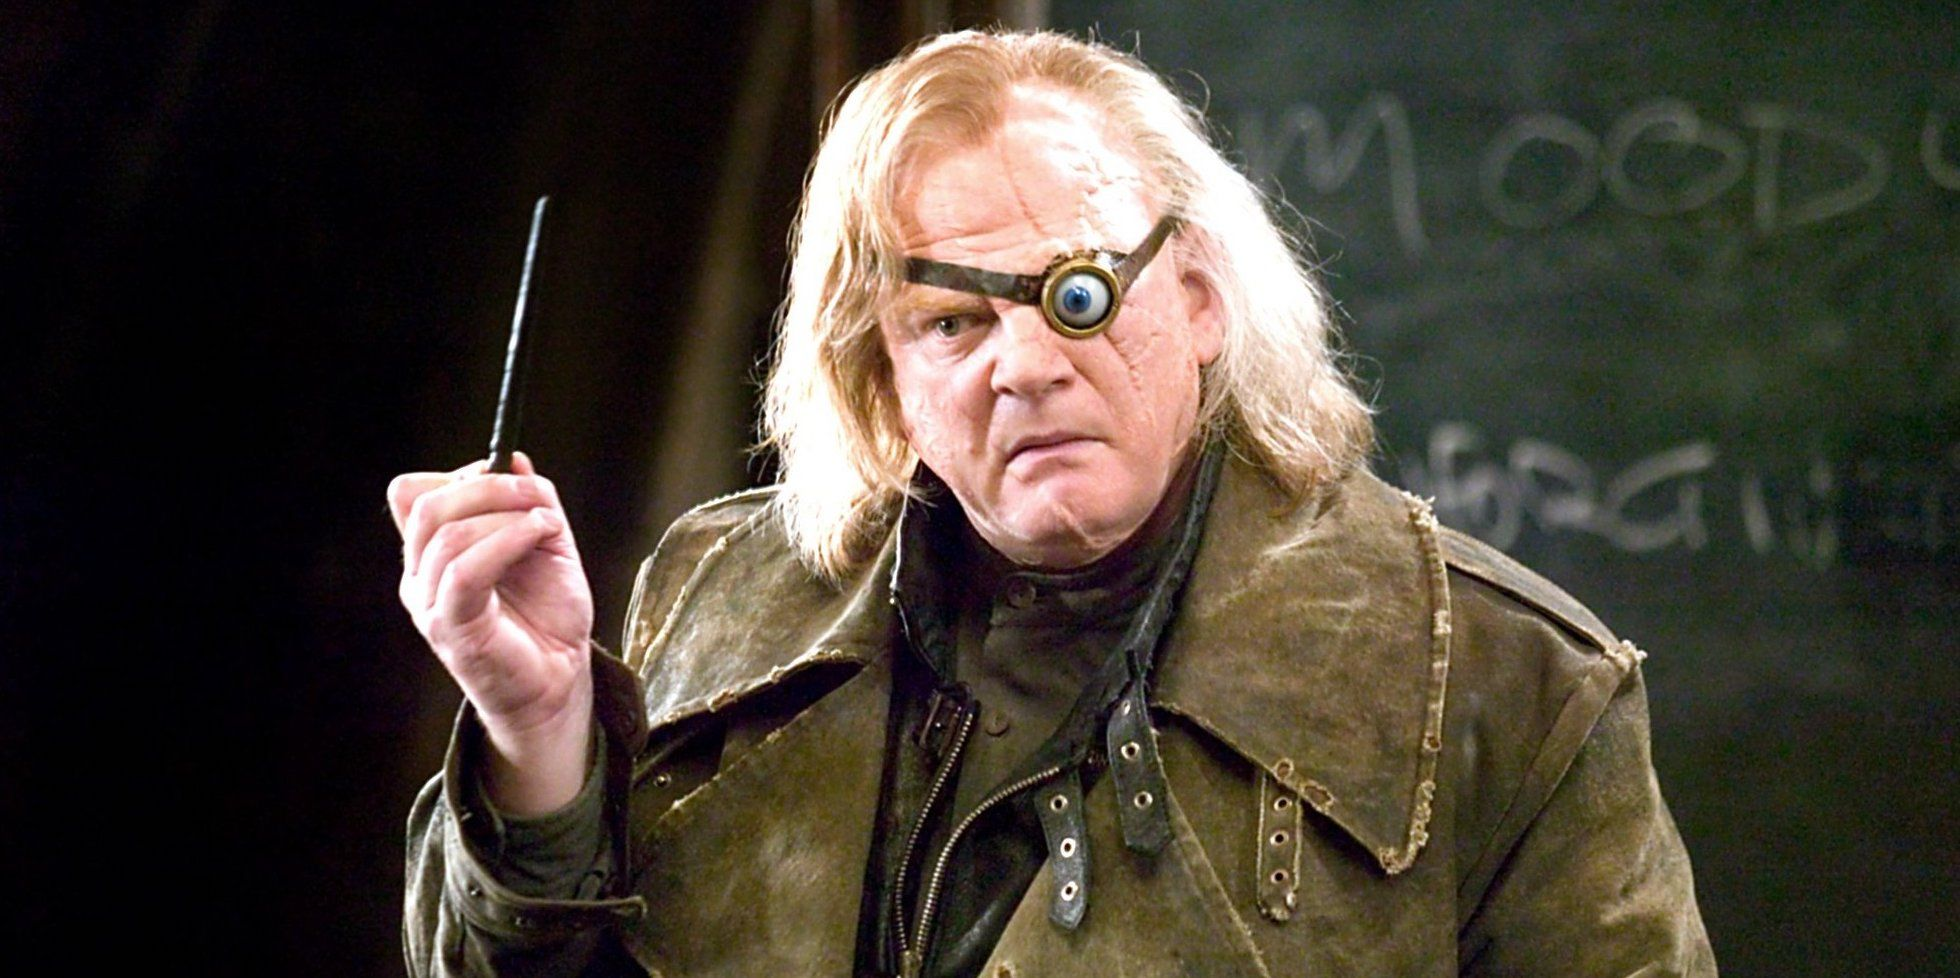 Harry Potter: 10 Things About Mad-Eye Moody The Movies Leave Out